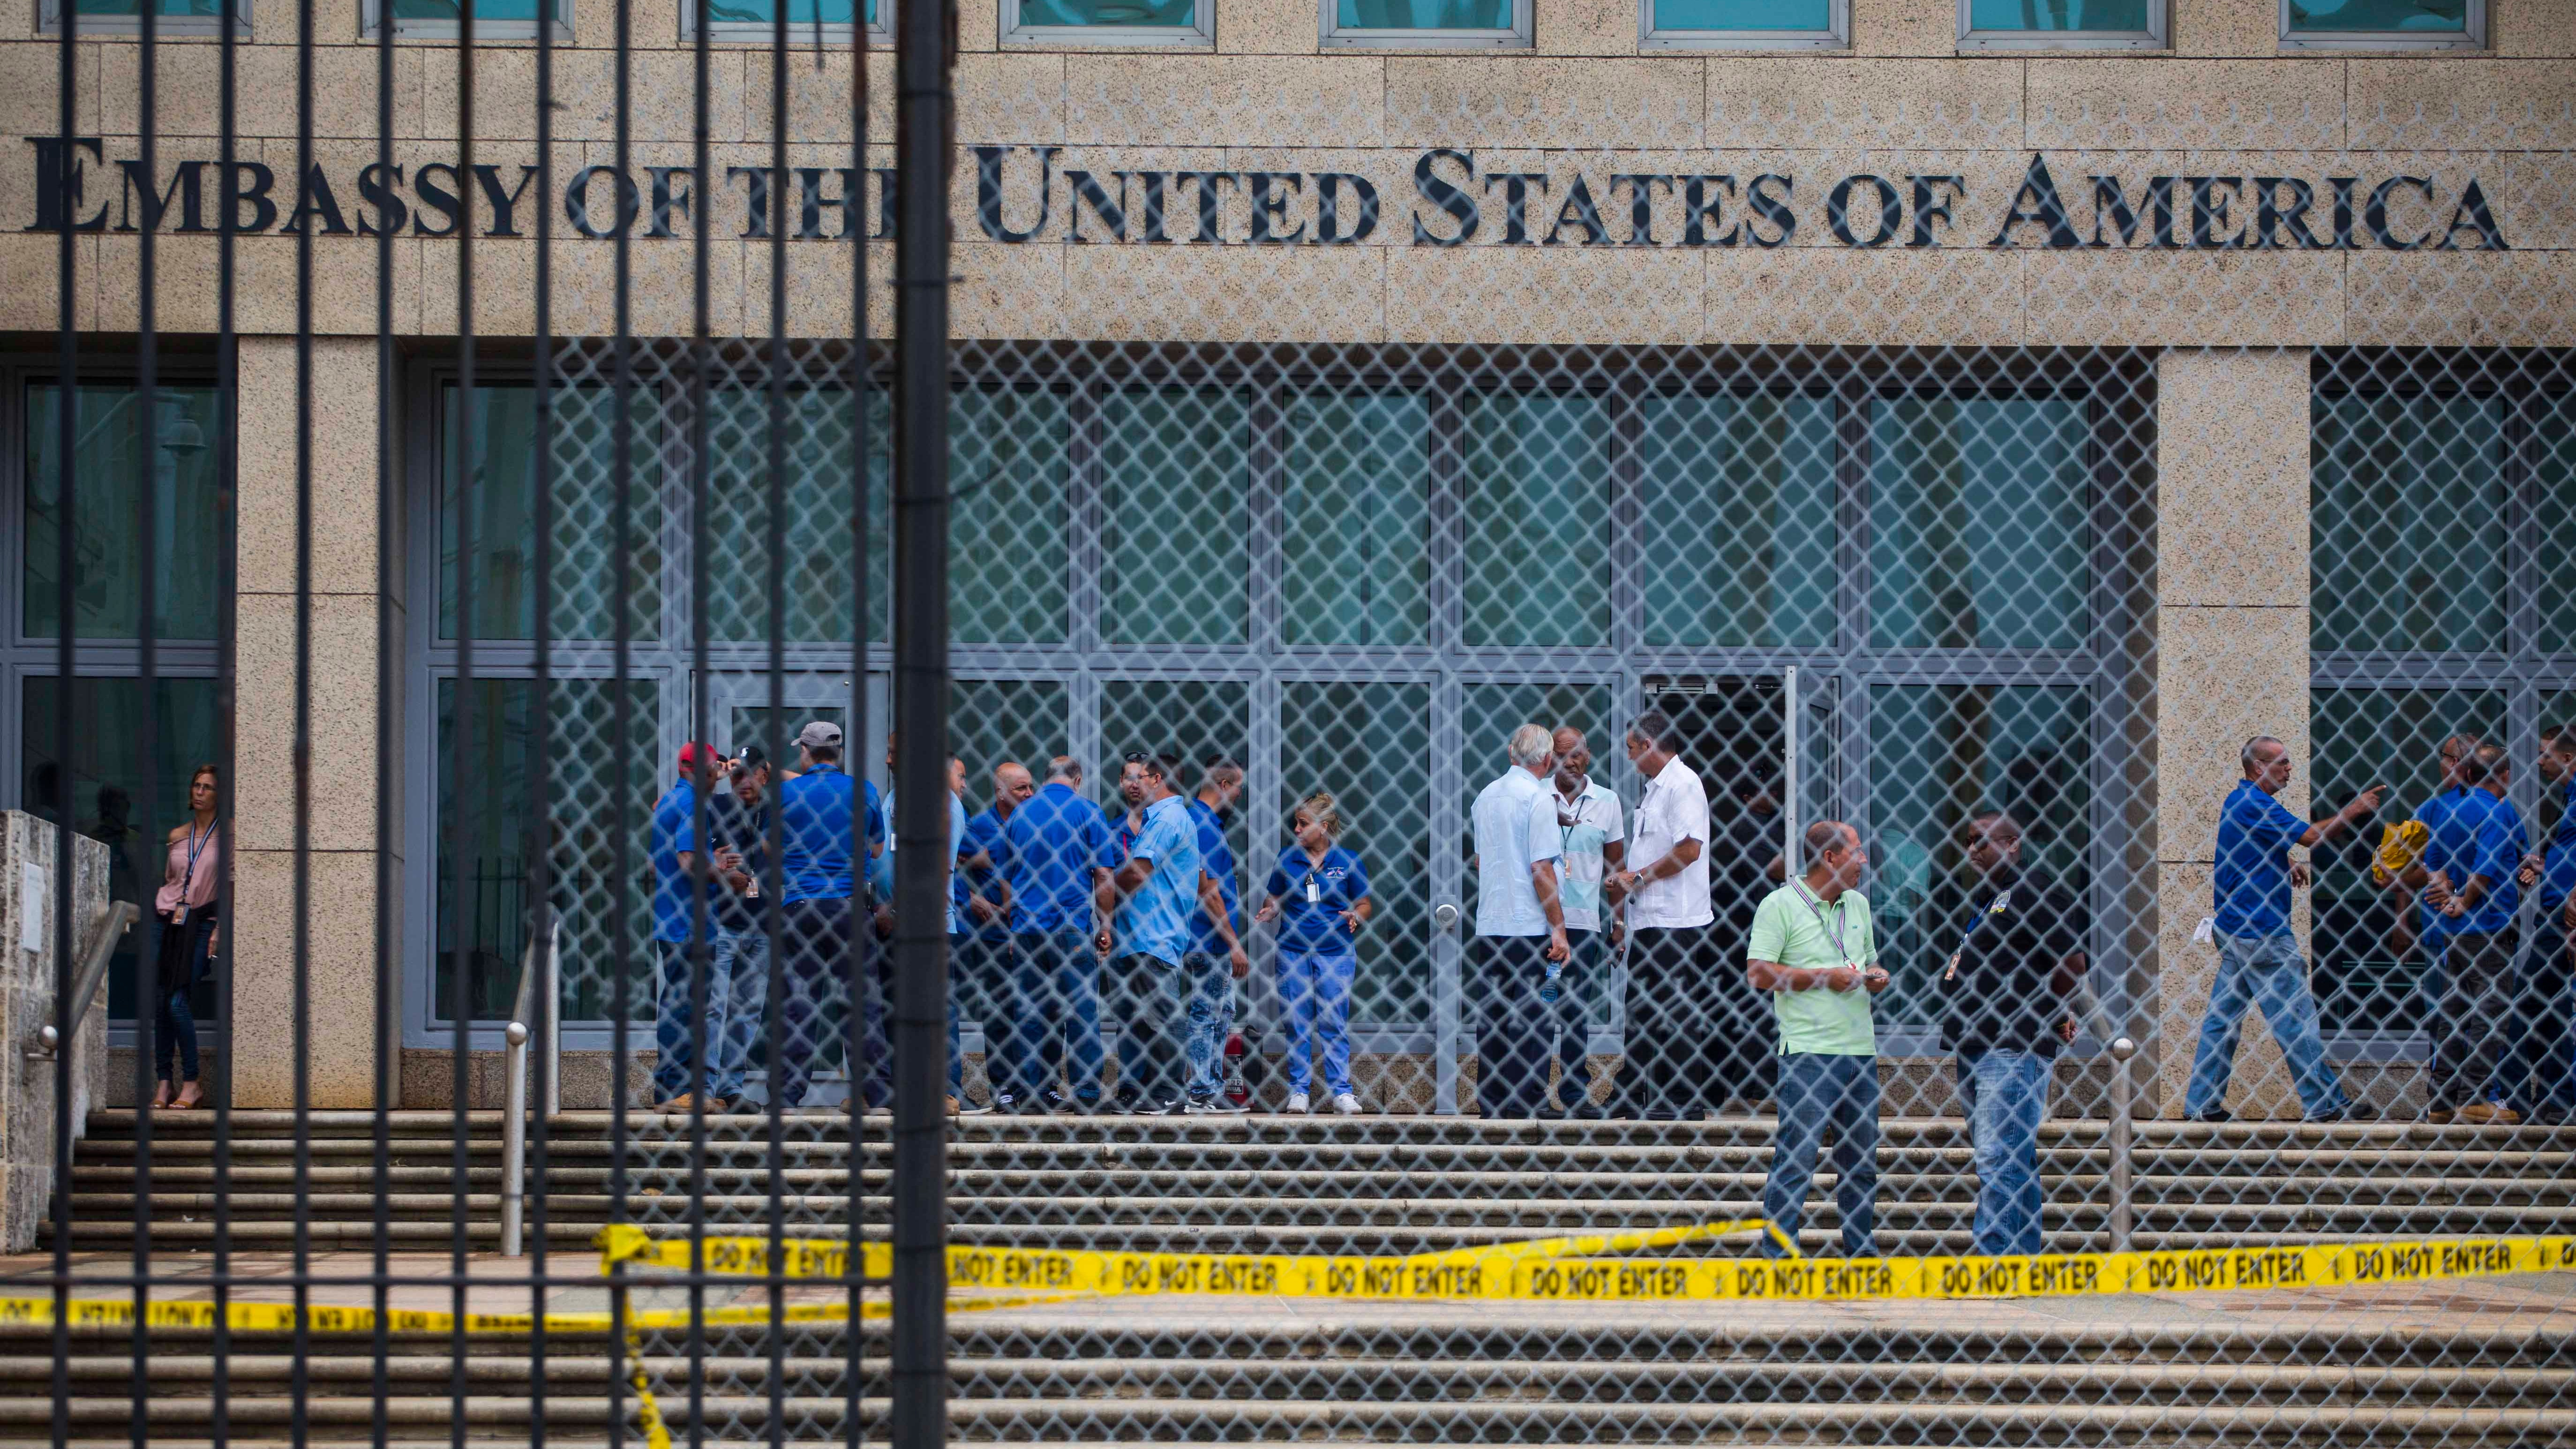 Doctors Find Symptoms Of Brain Trauma In US Staff In Cuba, But No Evidence Of 'Sonic Device'